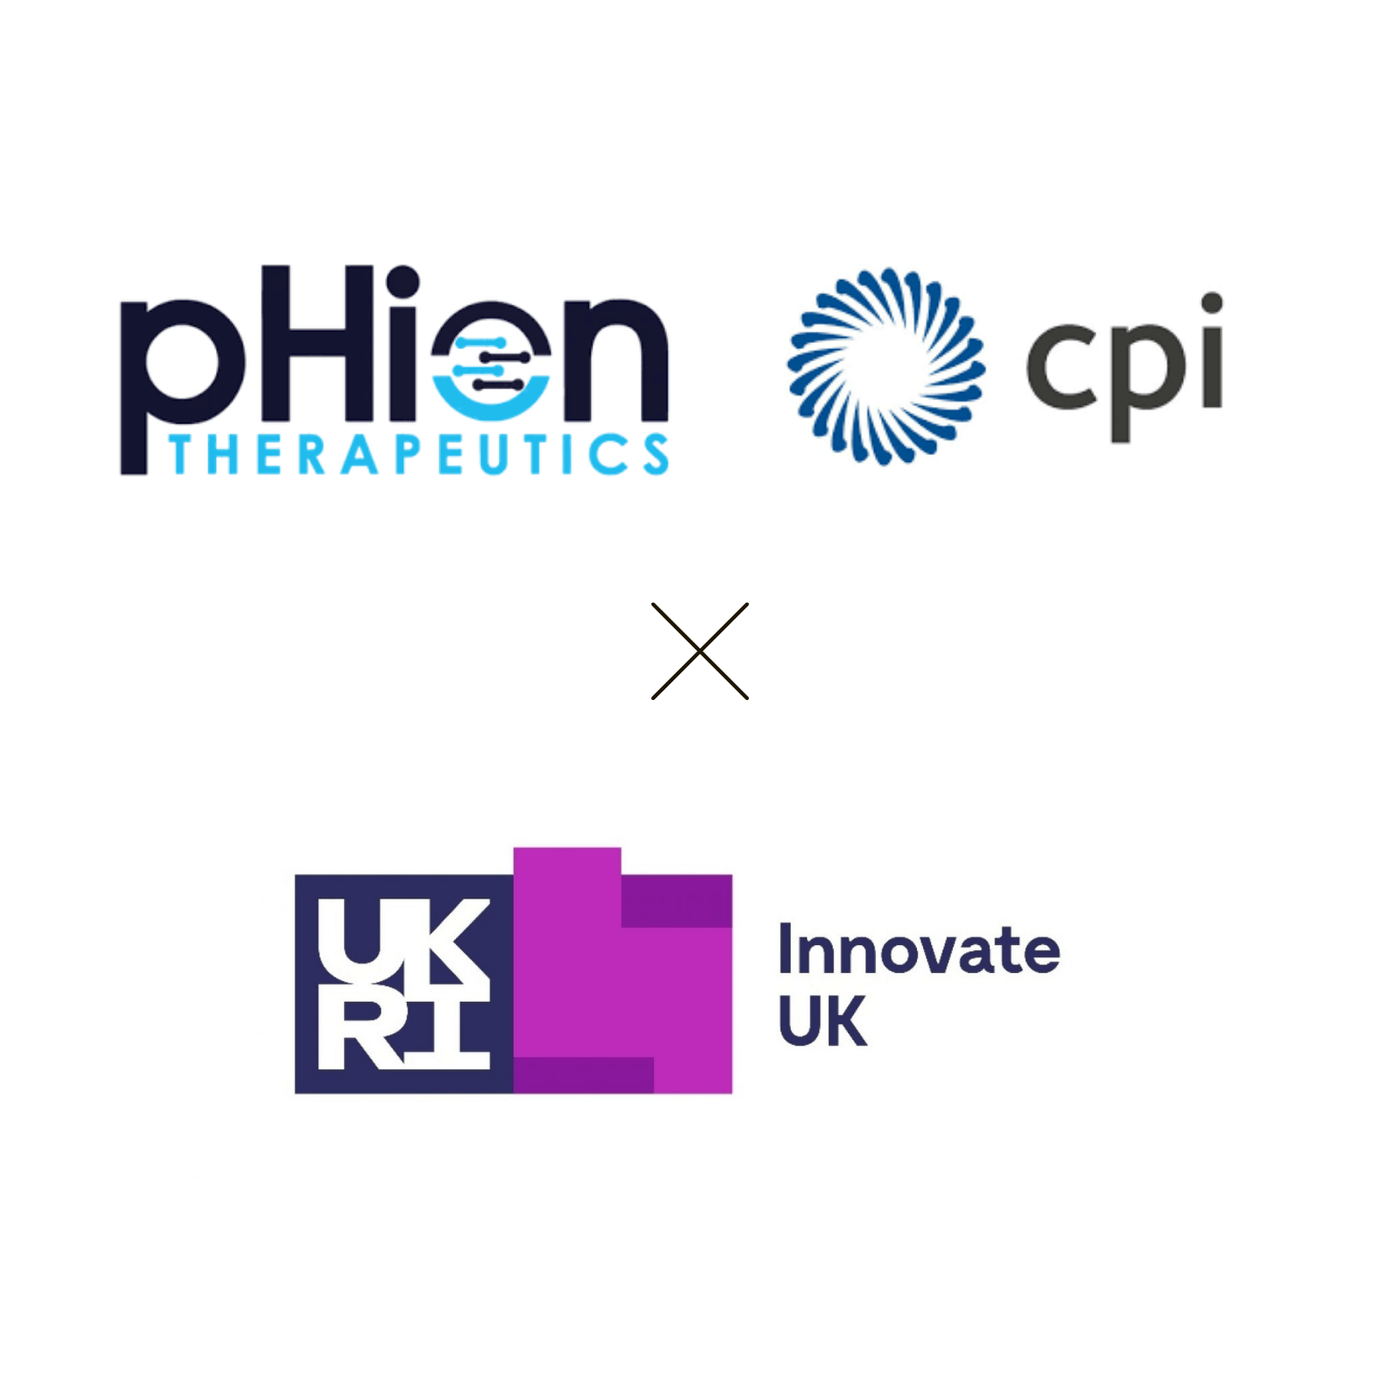 pHion, CPI and Reach Regulatory secure Sustainable Innovation Funding Award from Innovate UK